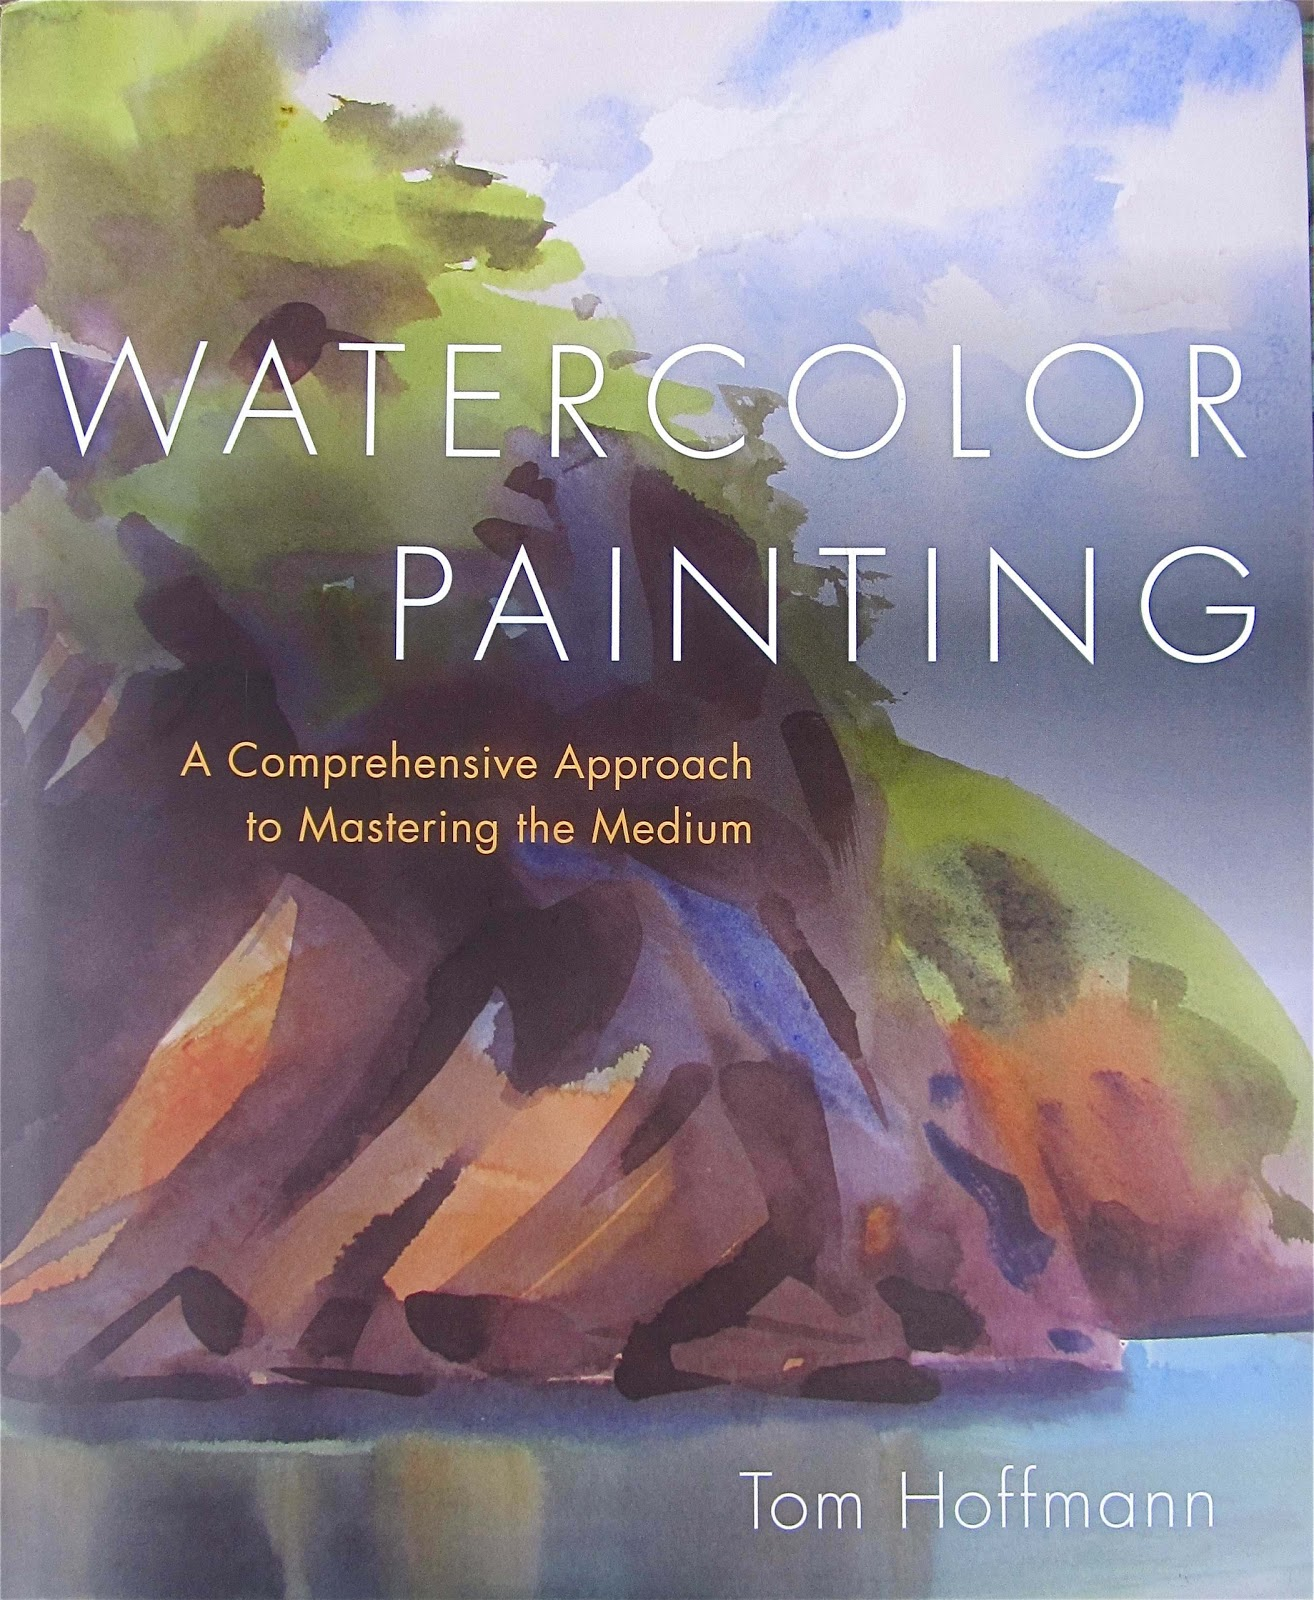 Watercolor books by mary whyte -  Watercolor Painting A Comprehensive Approach To Mastering The Medium With Tom Hoffmann Free Demo And Book Signing December 16th 2012